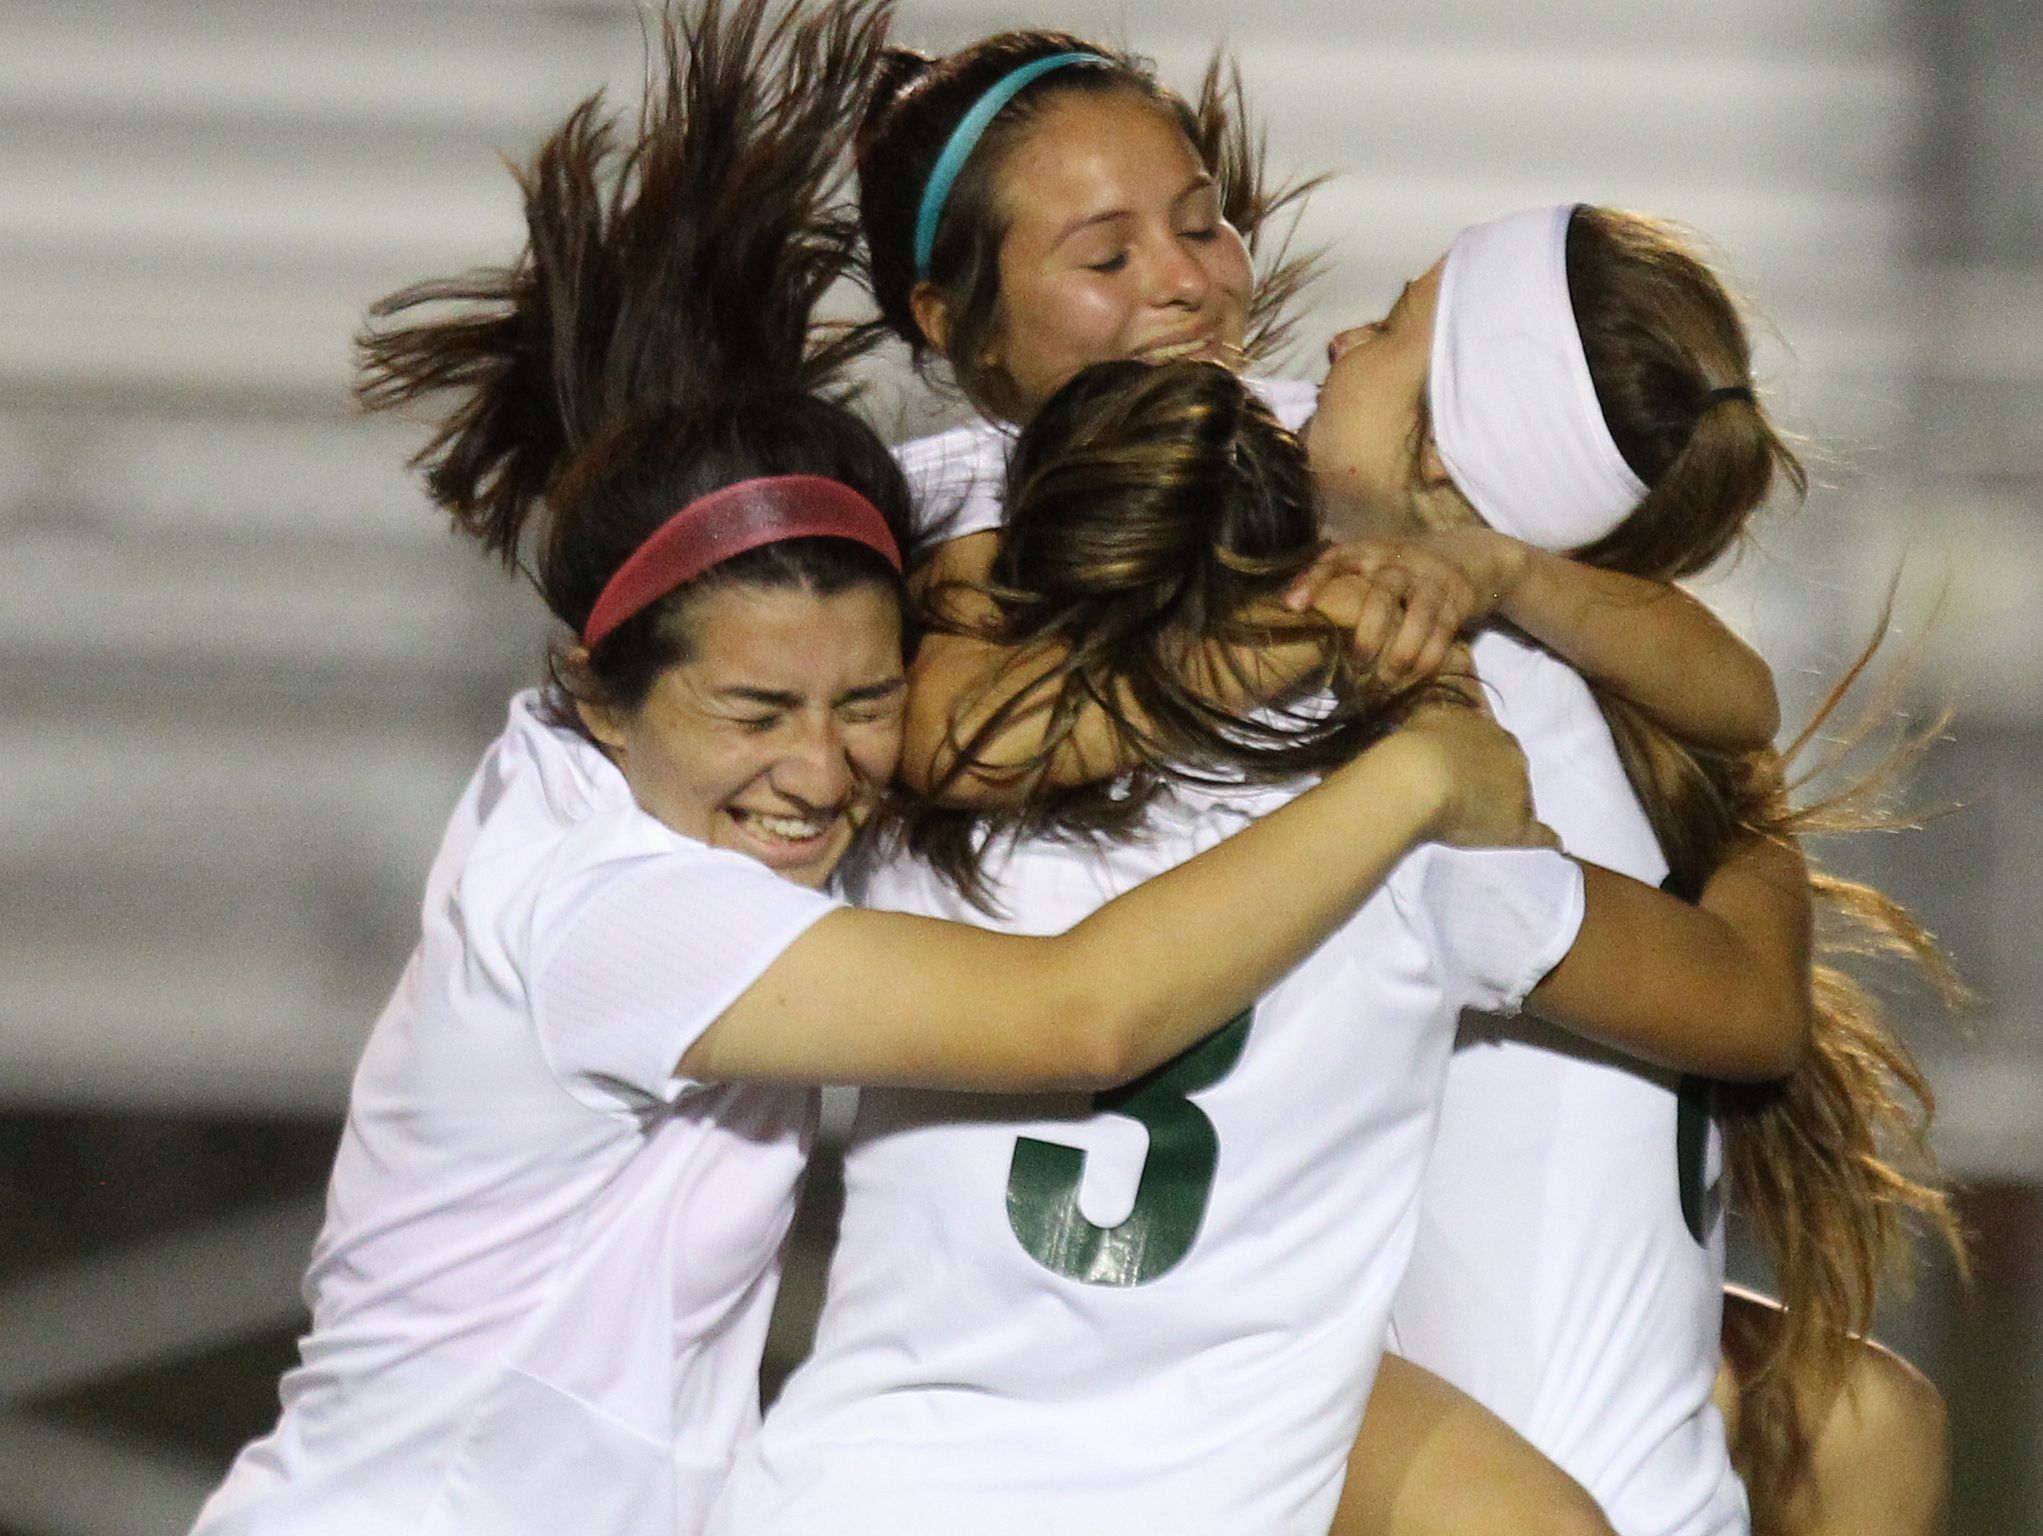 Coachella Valley High School's soccer team celebrate their second goal in the second half of their championship De Anza League against Rancho Mirage High School in Thermal on February 7, 2017.